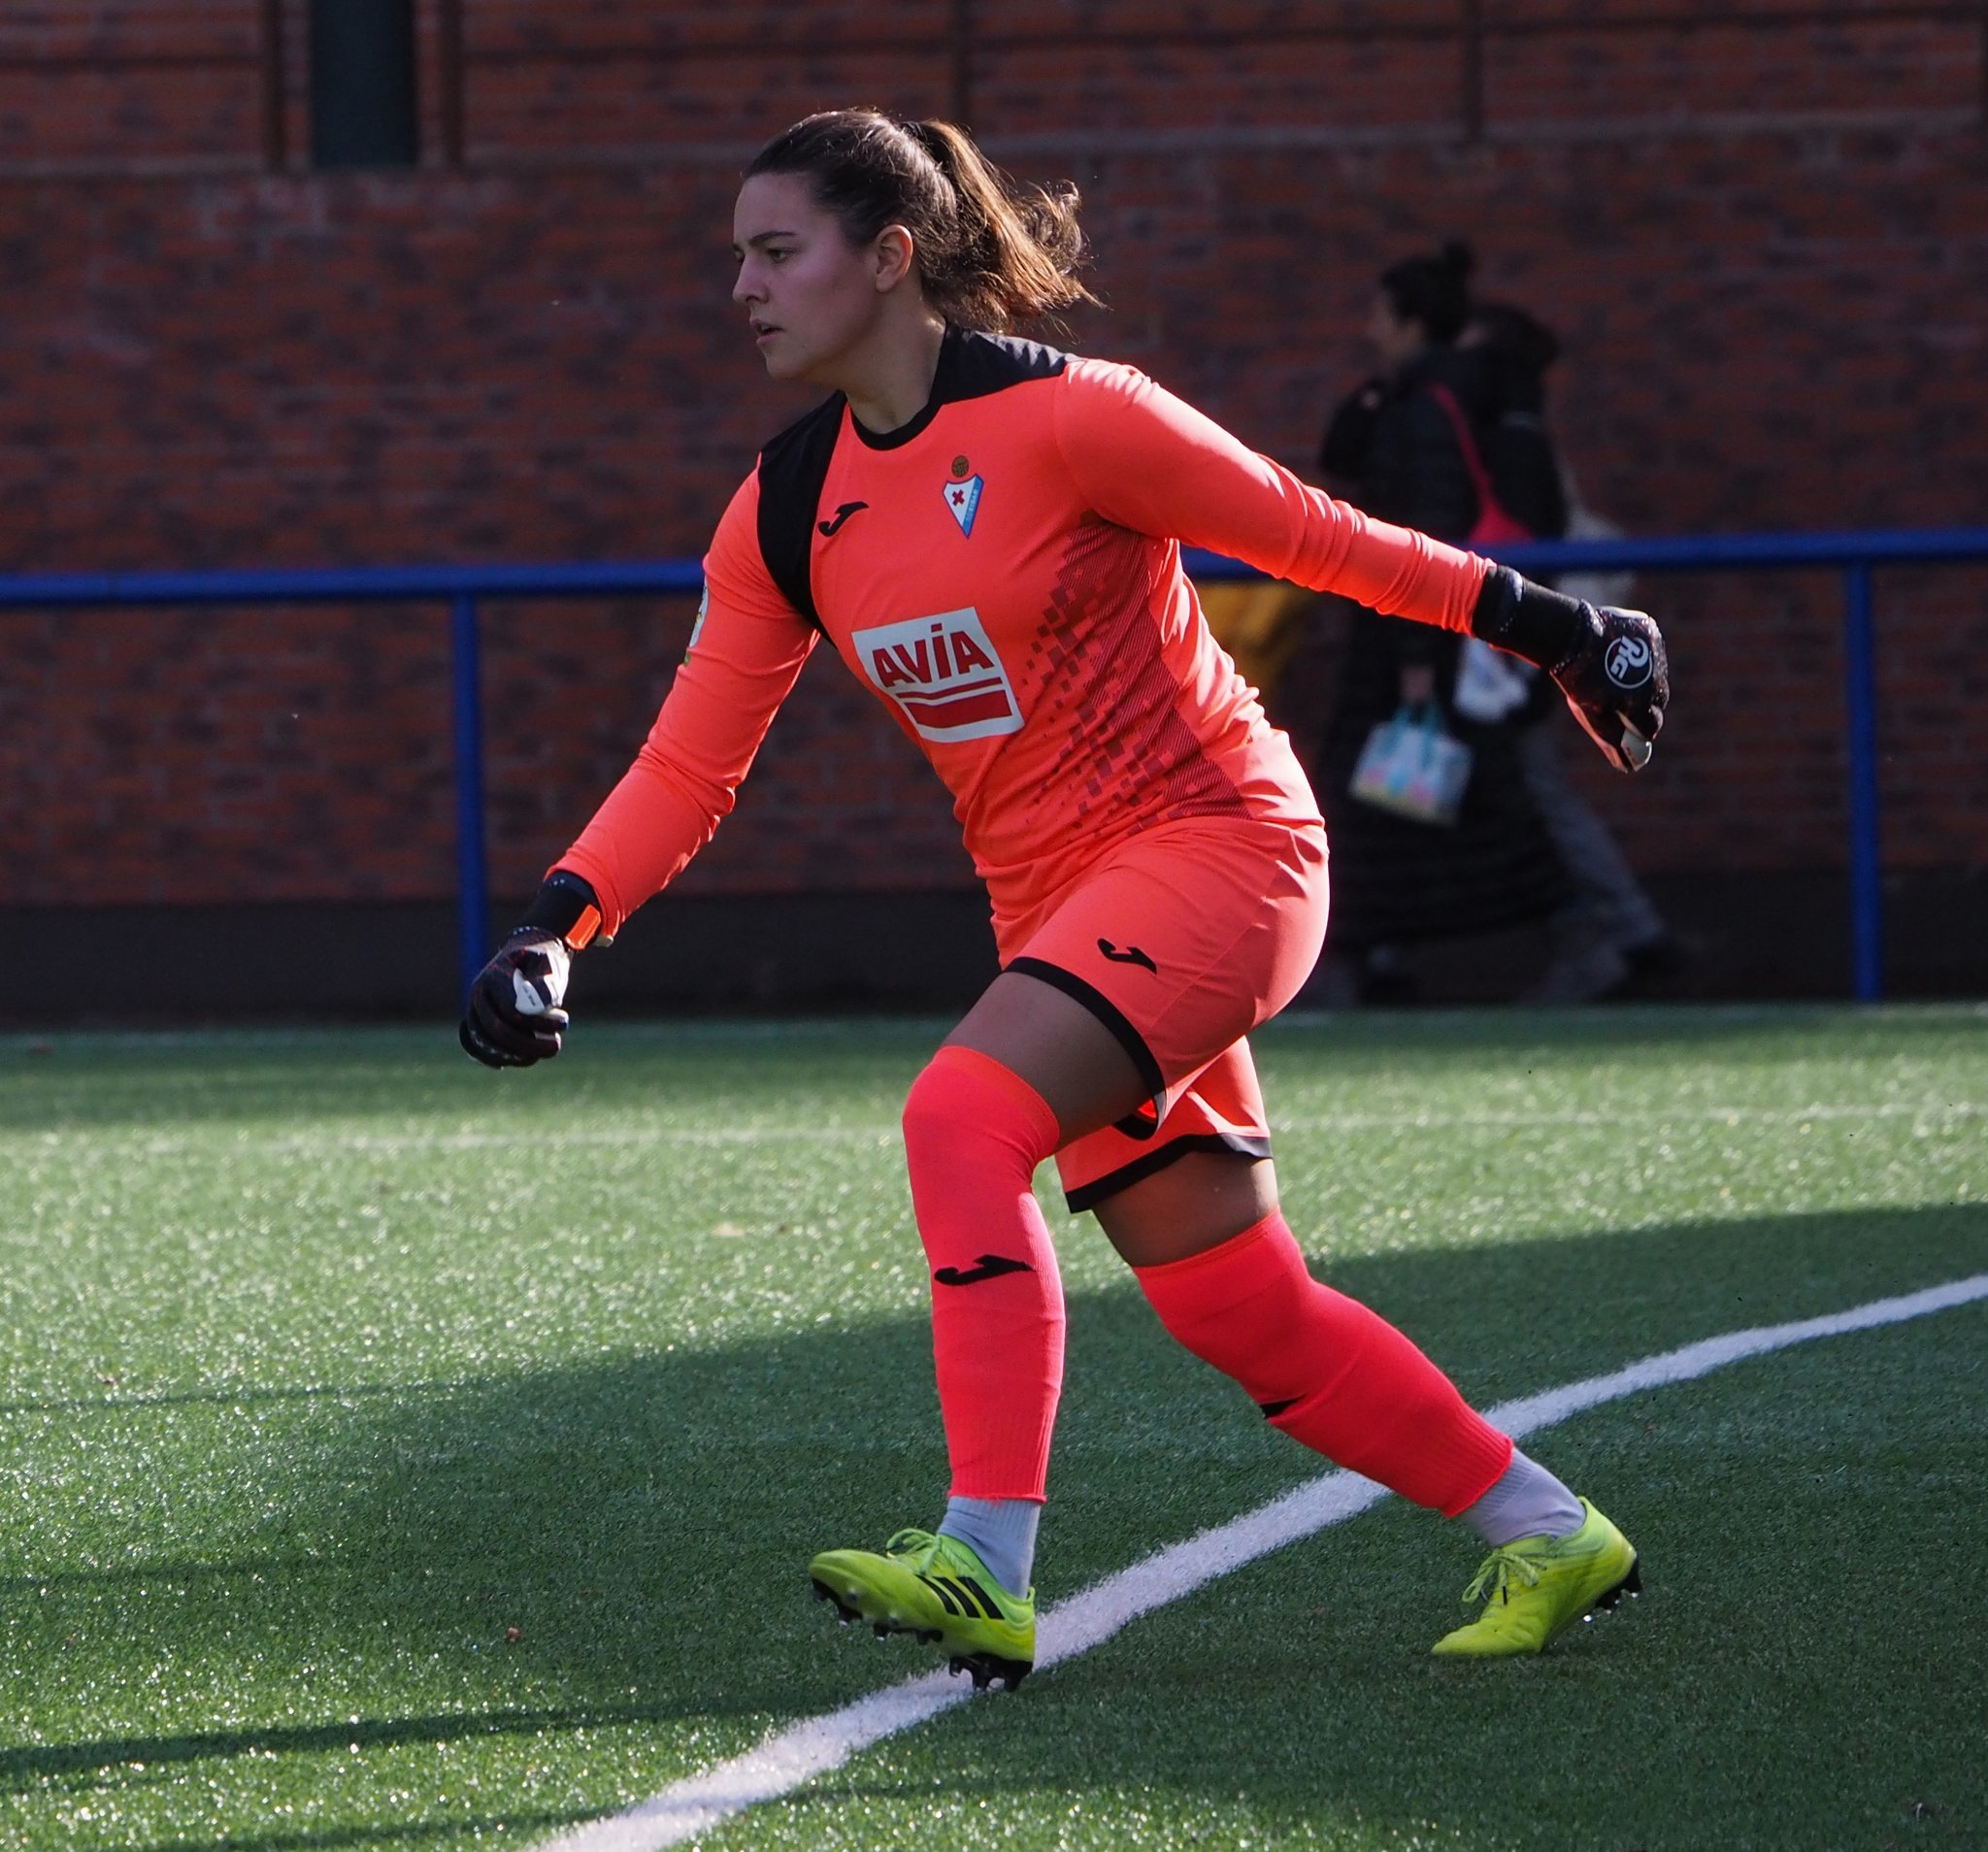 Malena Mieres co Eibar | MM